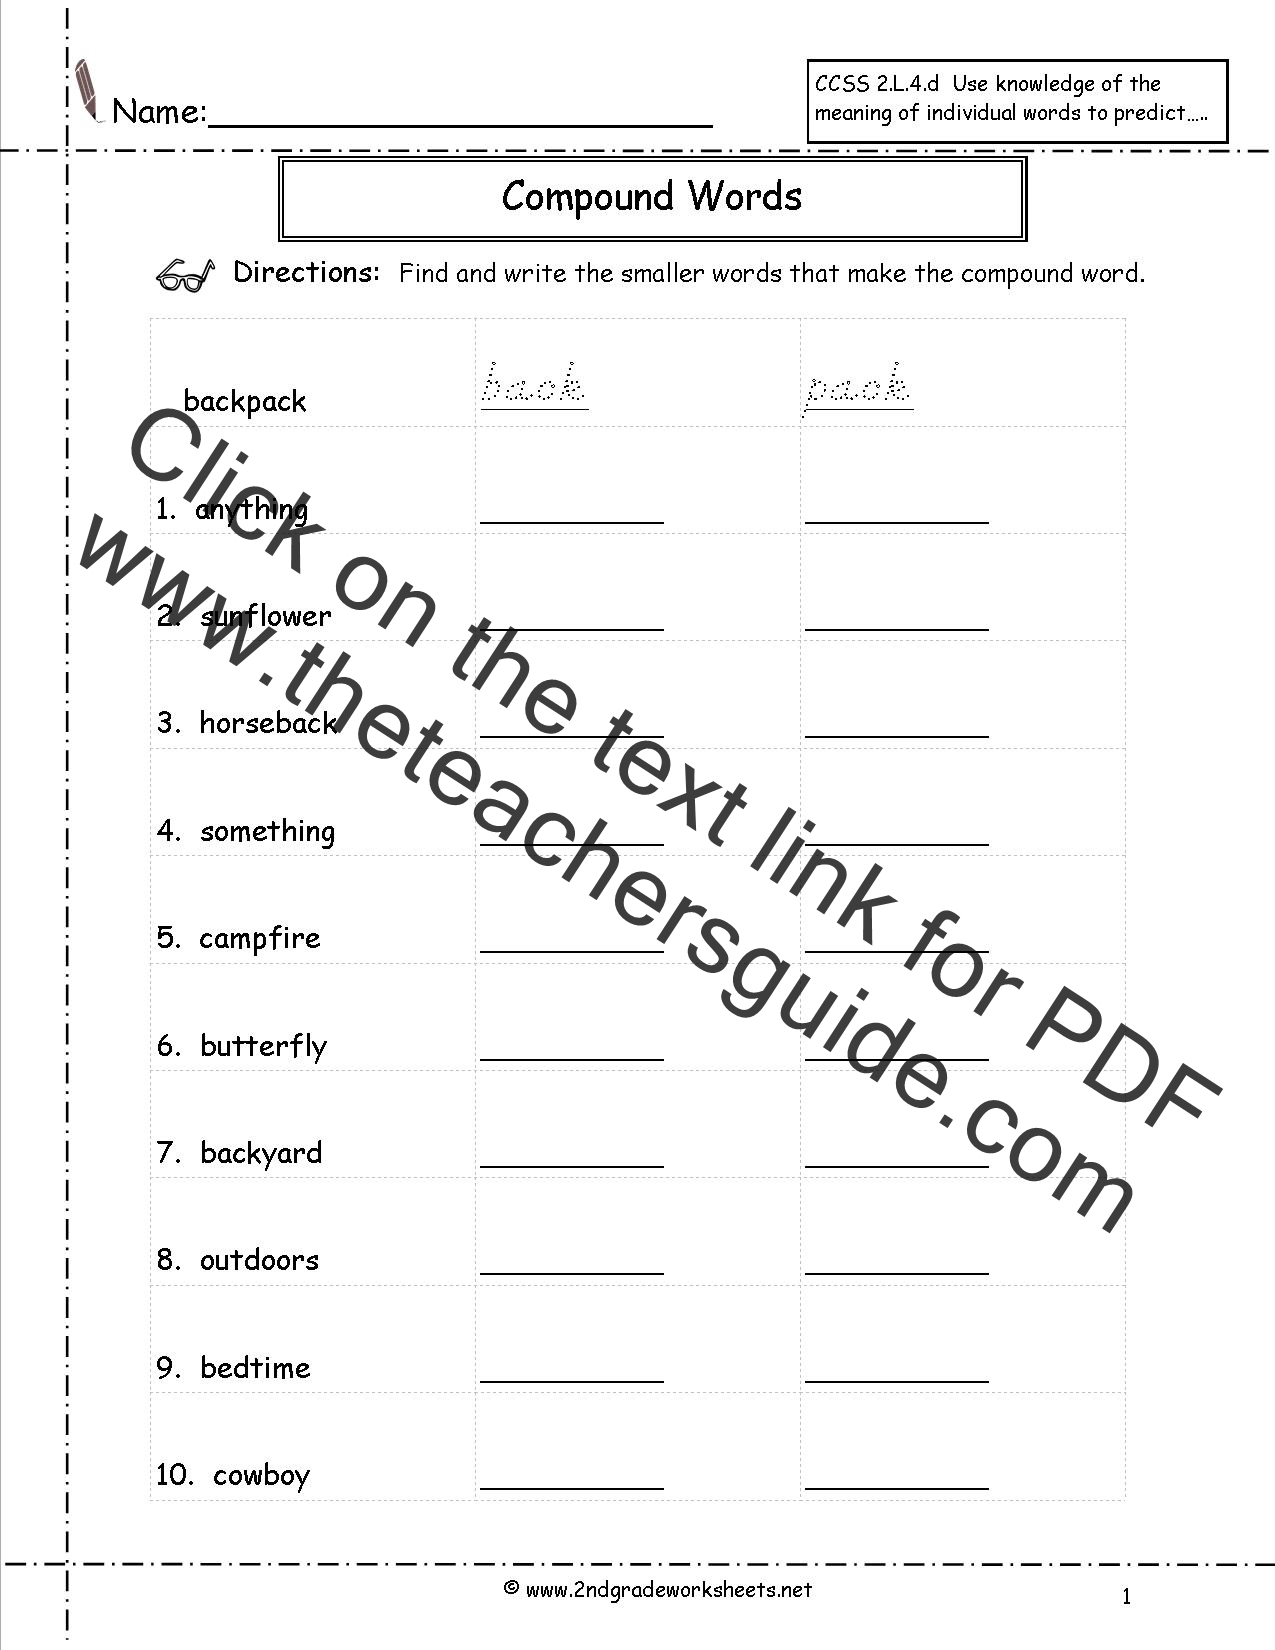 Worksheets 2nd Grade Worksheets free languagegrammar worksheets and printouts compound words worksheets